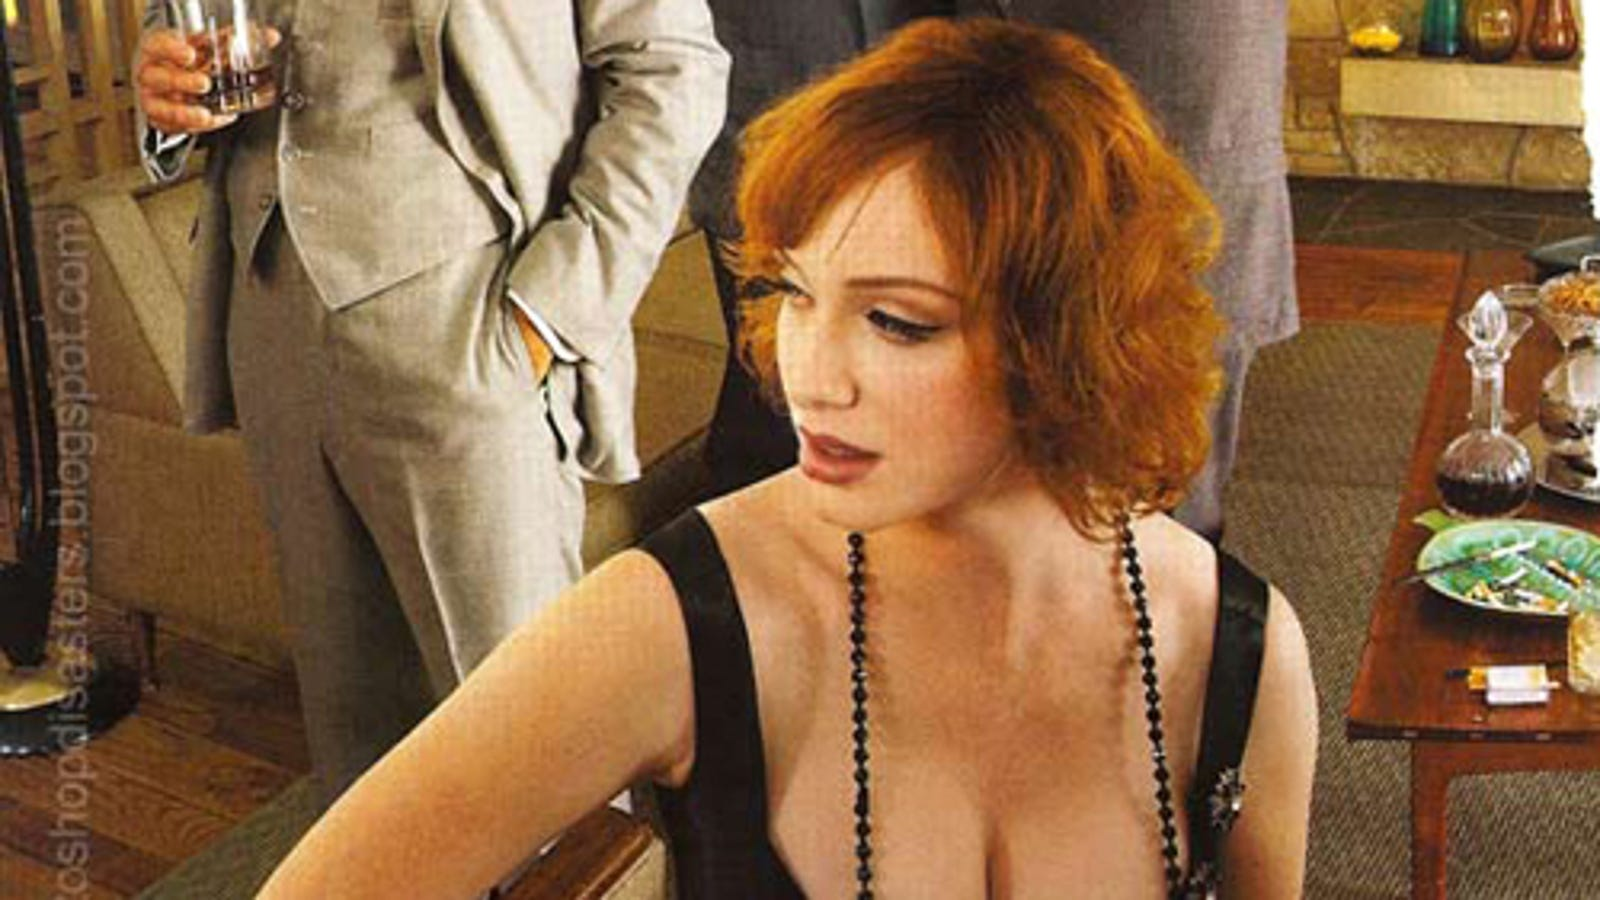 Another Christina Hendricks Photoshop: Just A Pair Of Tits